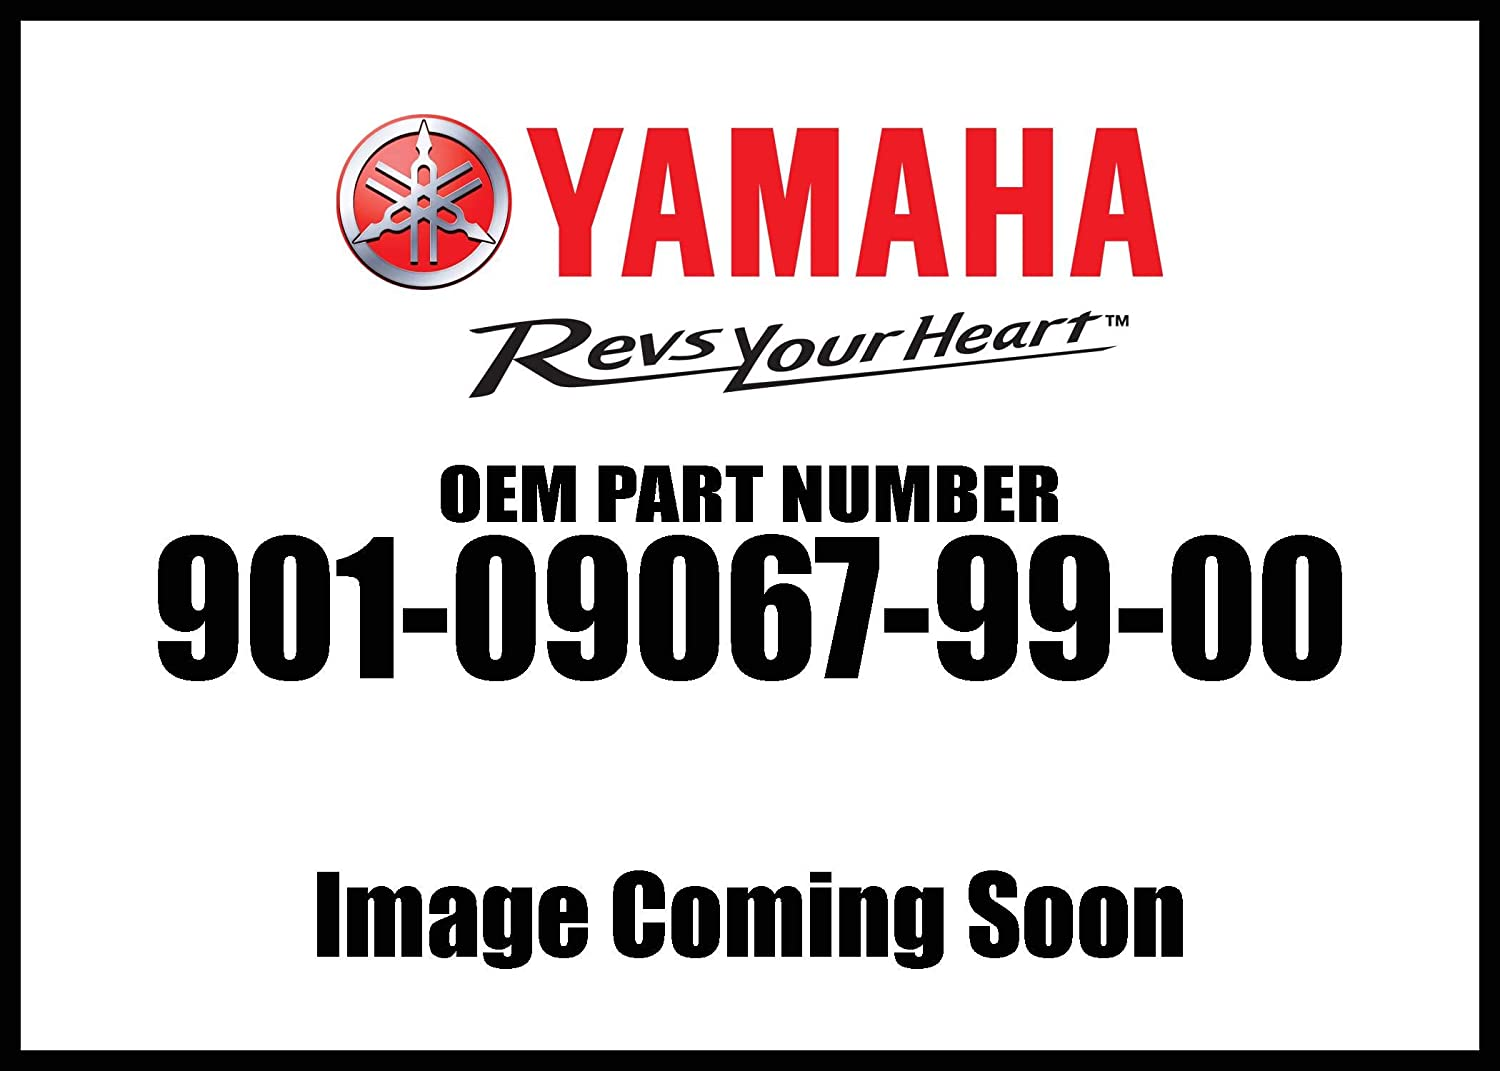 Yamaha 90109-06799-00 Bolt; 901090679900 Made by Yamaha